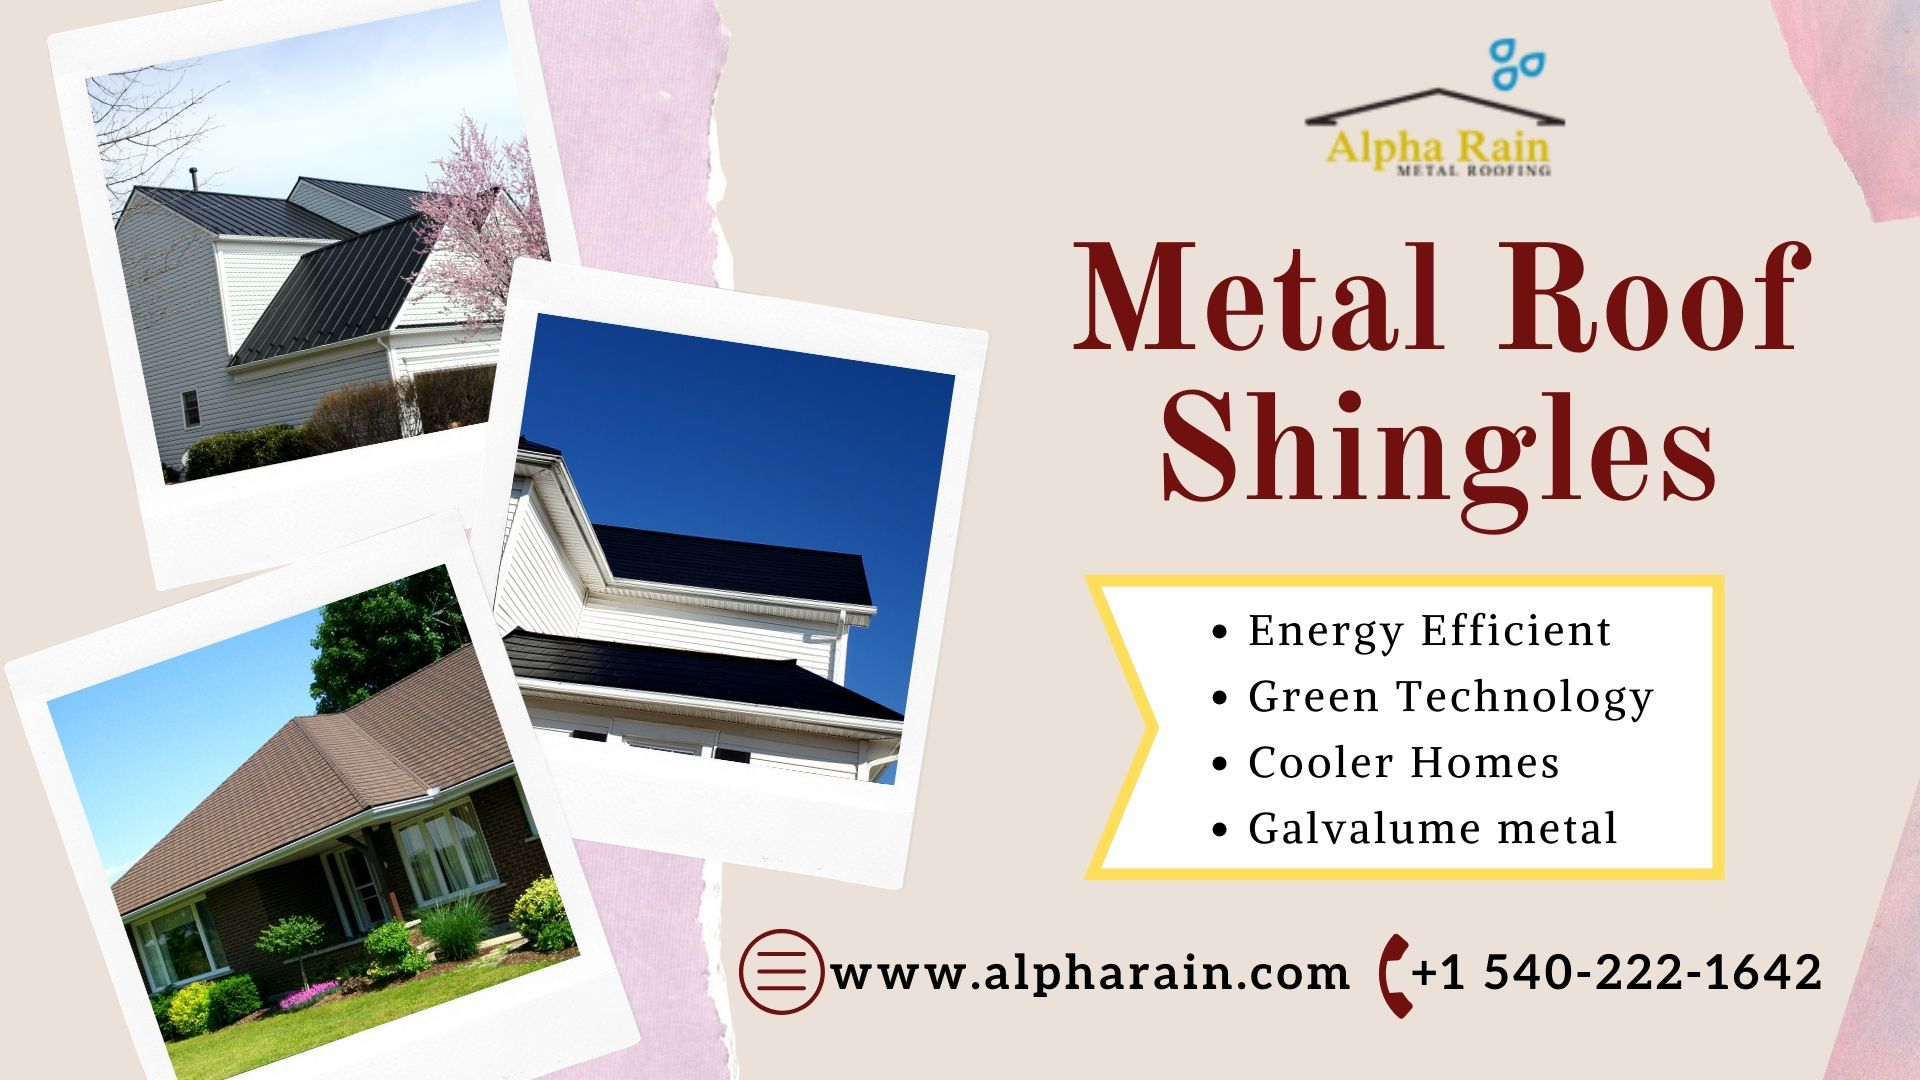 Alpha Rain Is A Very Famous Metal Roof Shingles Provider In Northern Virginia We Install The Best Quality Shingle In 2020 Metal Shingle Roof Metal Roof Metal Shingles